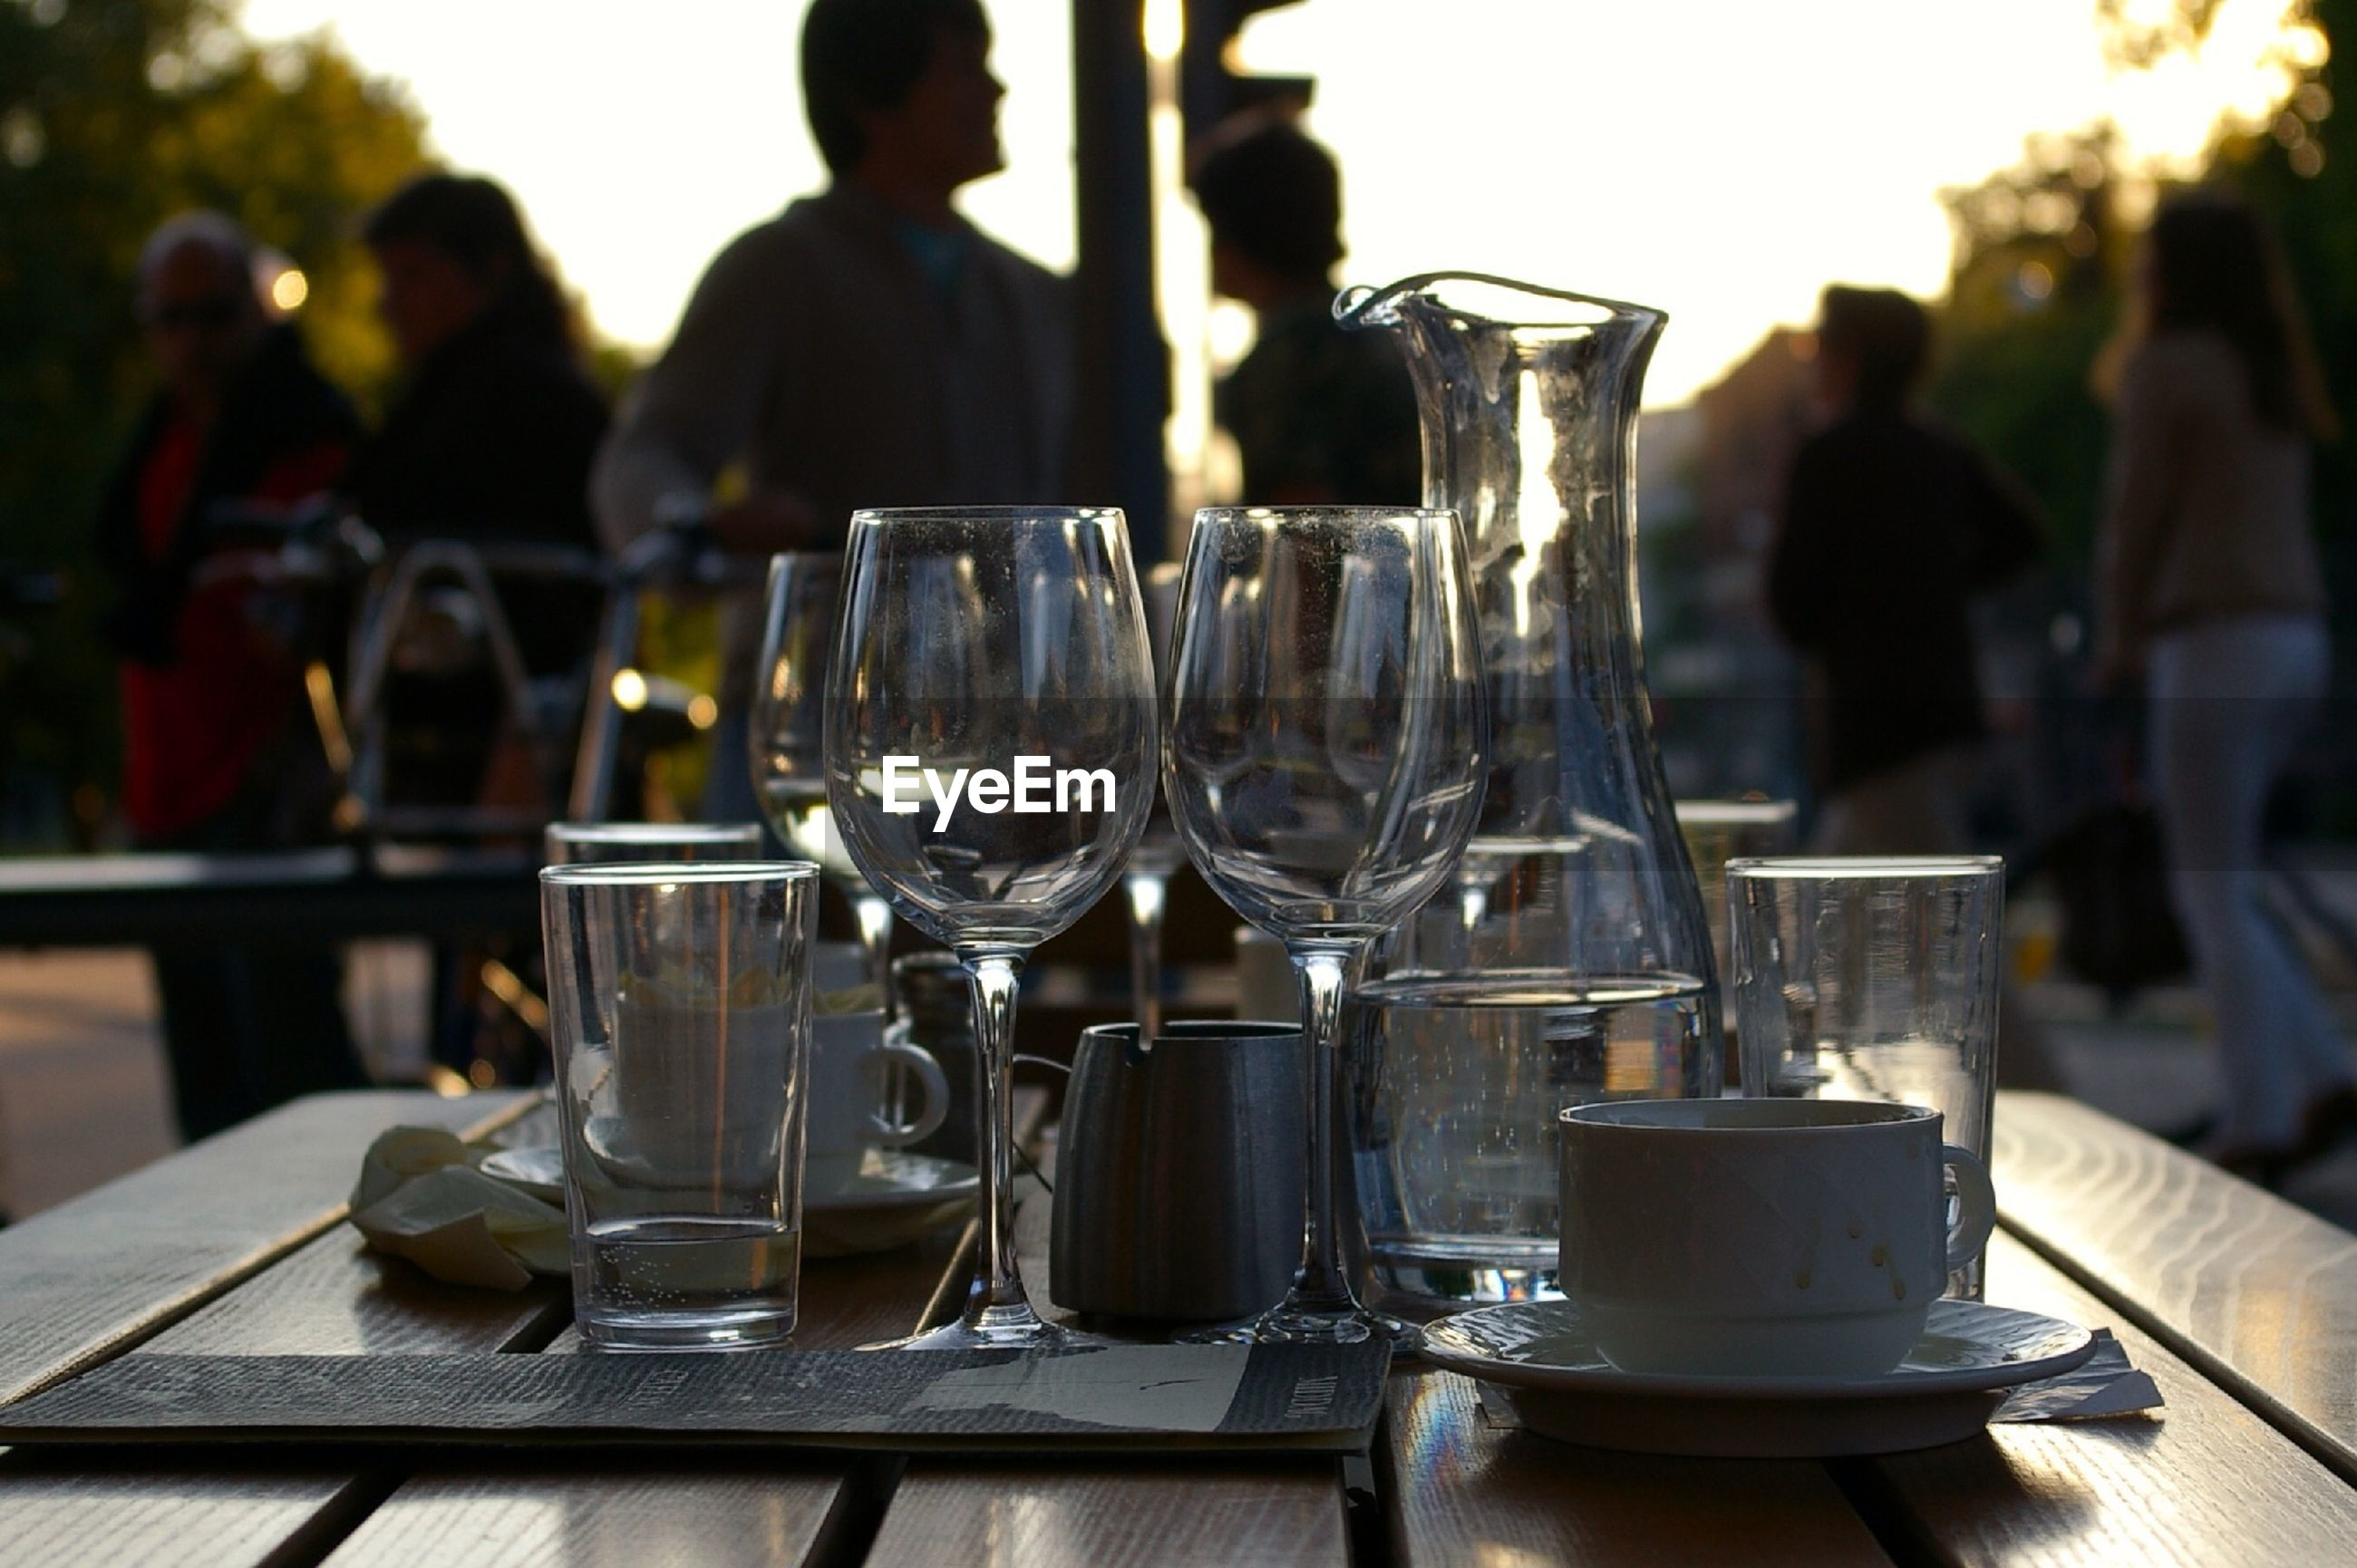 CLOSE-UP OF WINE GLASSES ON RESTAURANT